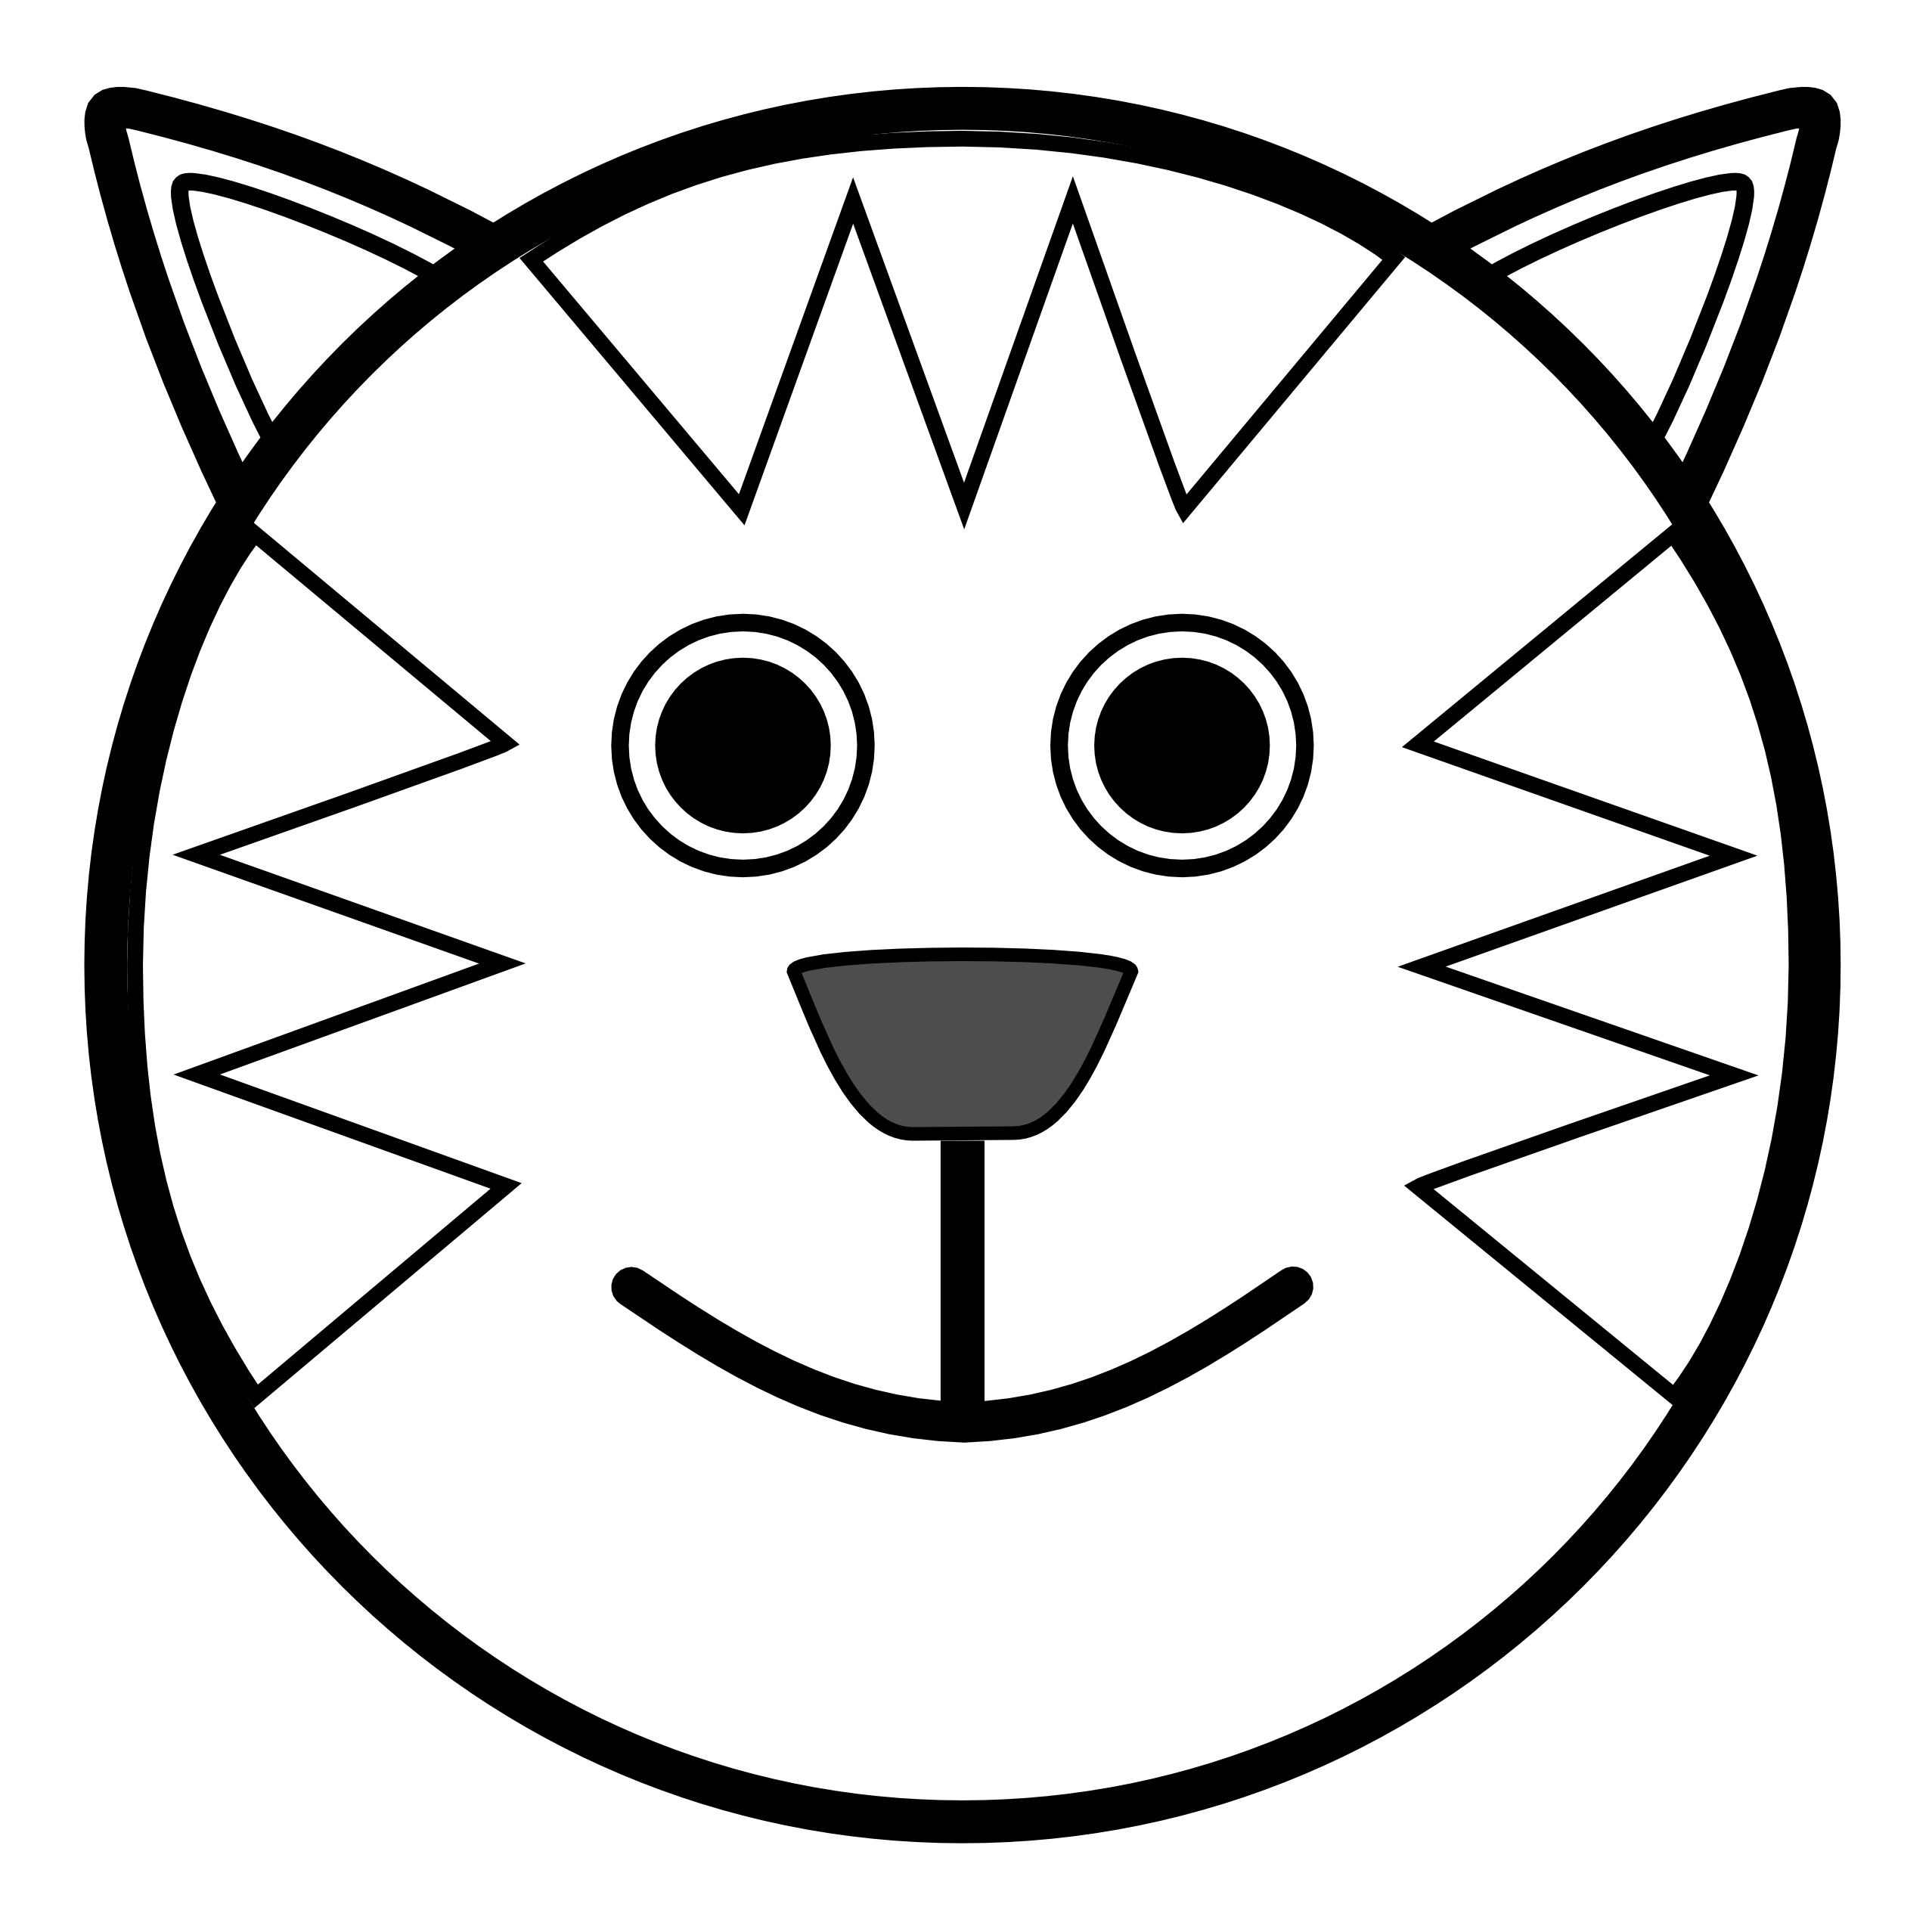 Animal Black And White Clipart - Clipart Kid